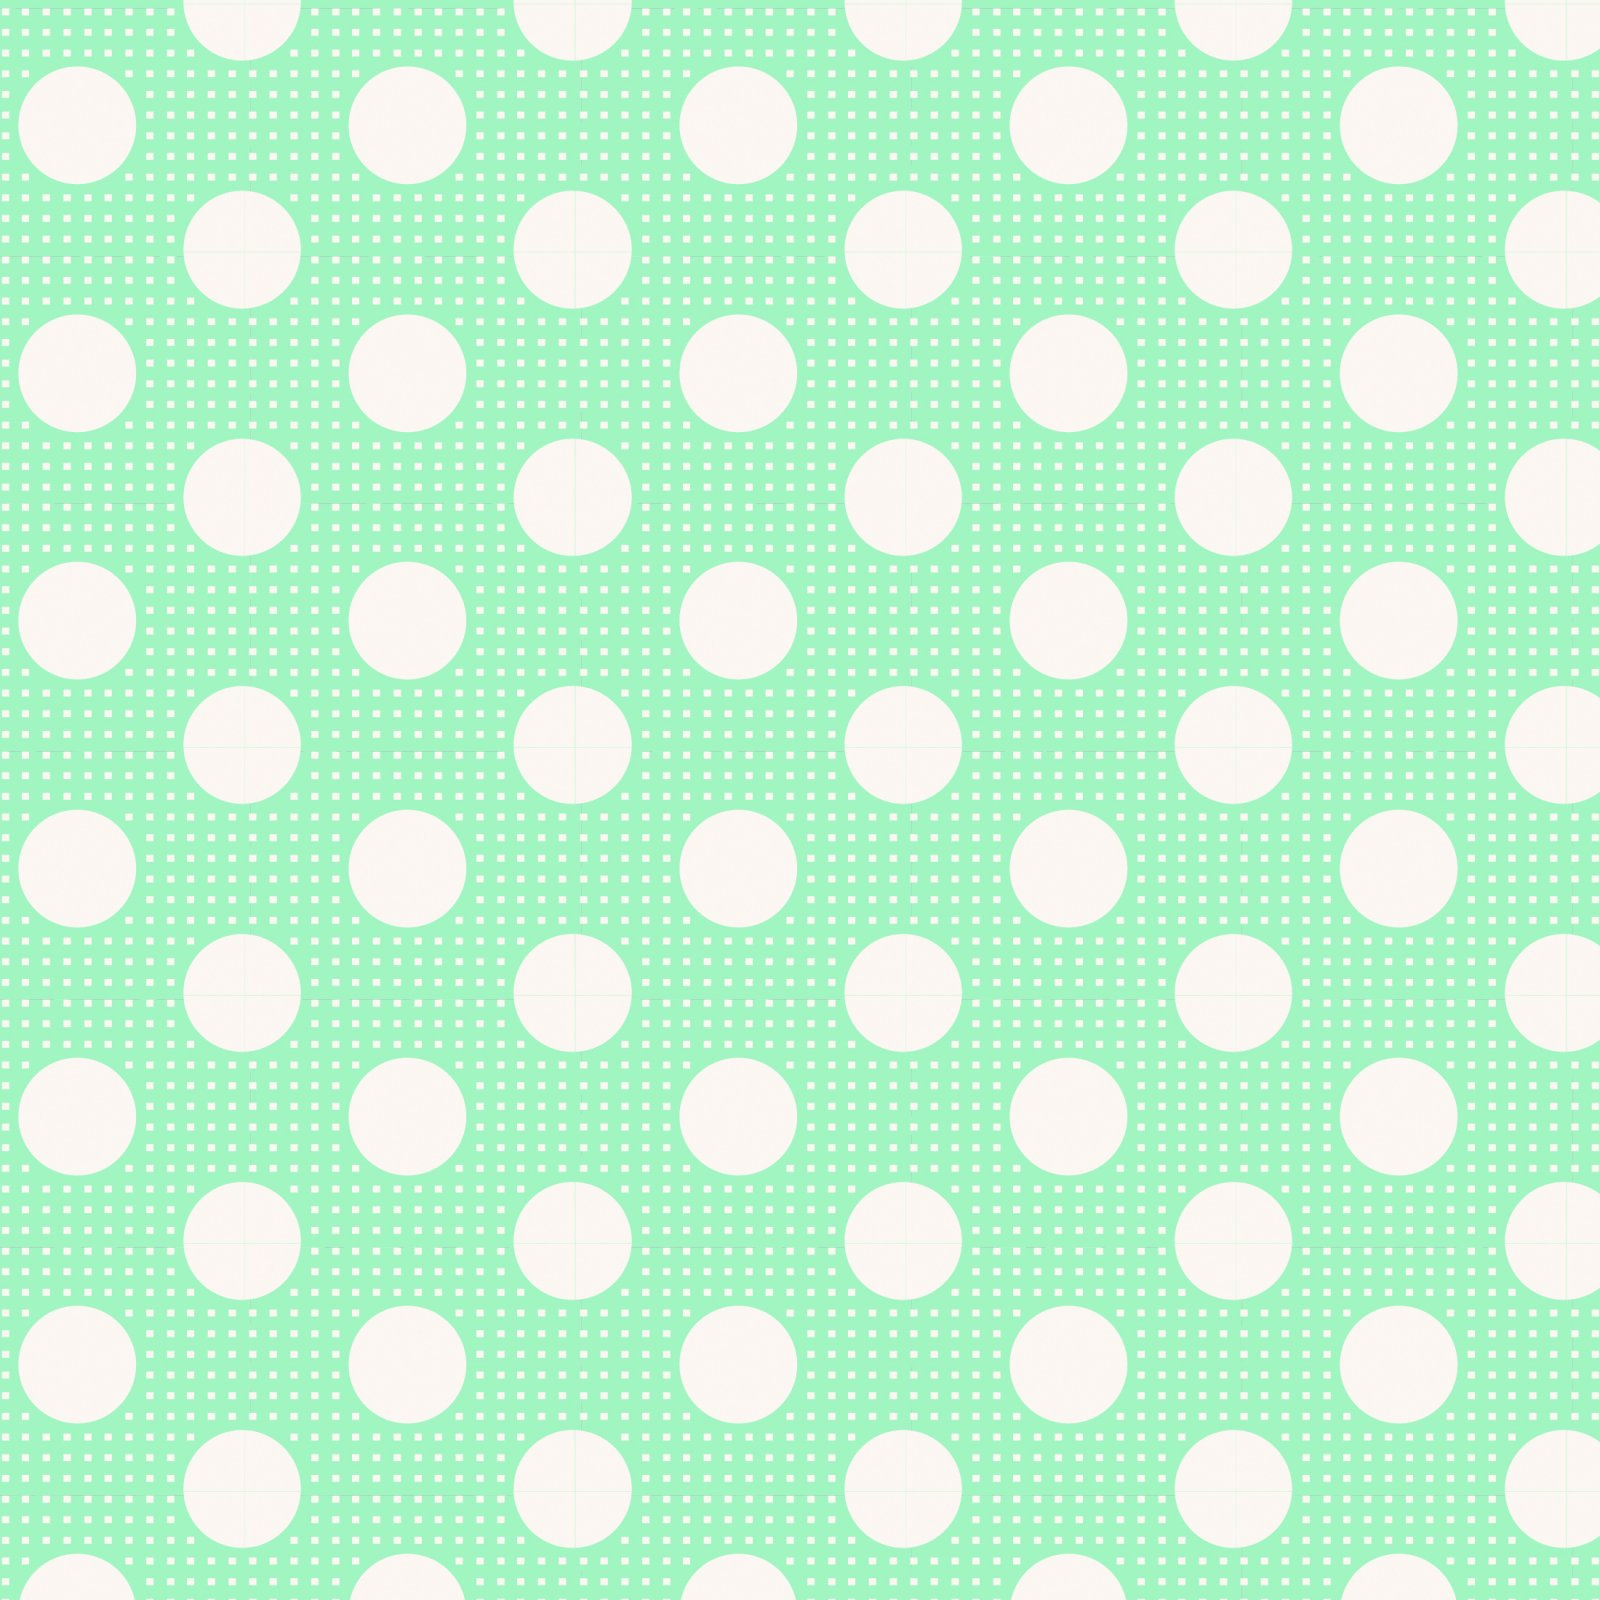 Tilda - Medium Dots Teal